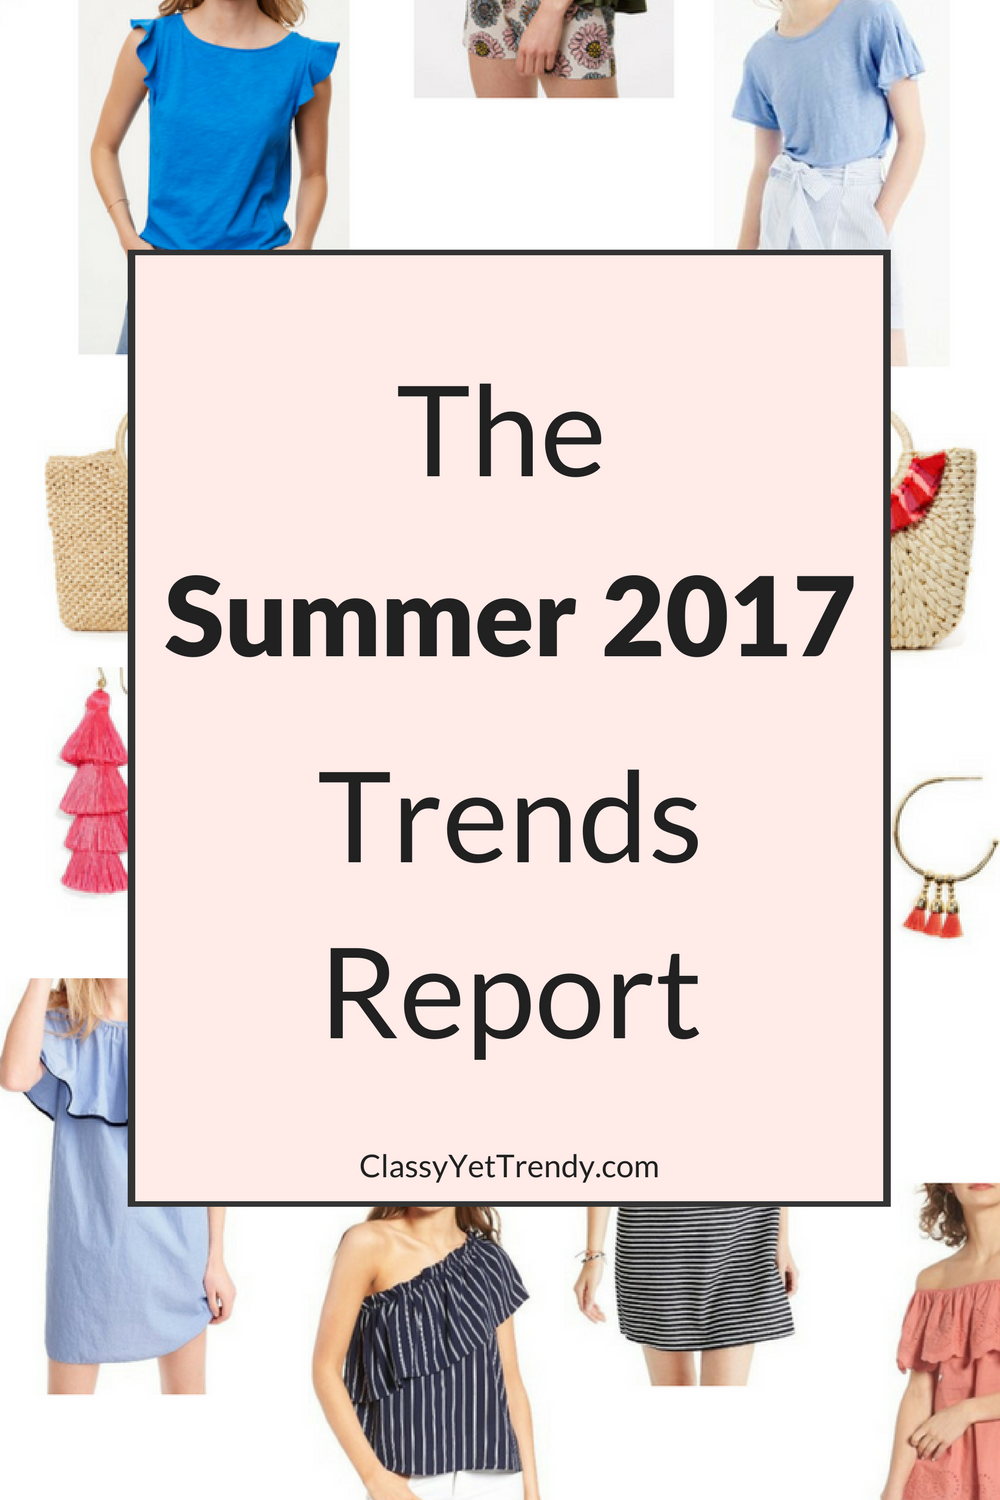 The Summer 2017 Trends Report